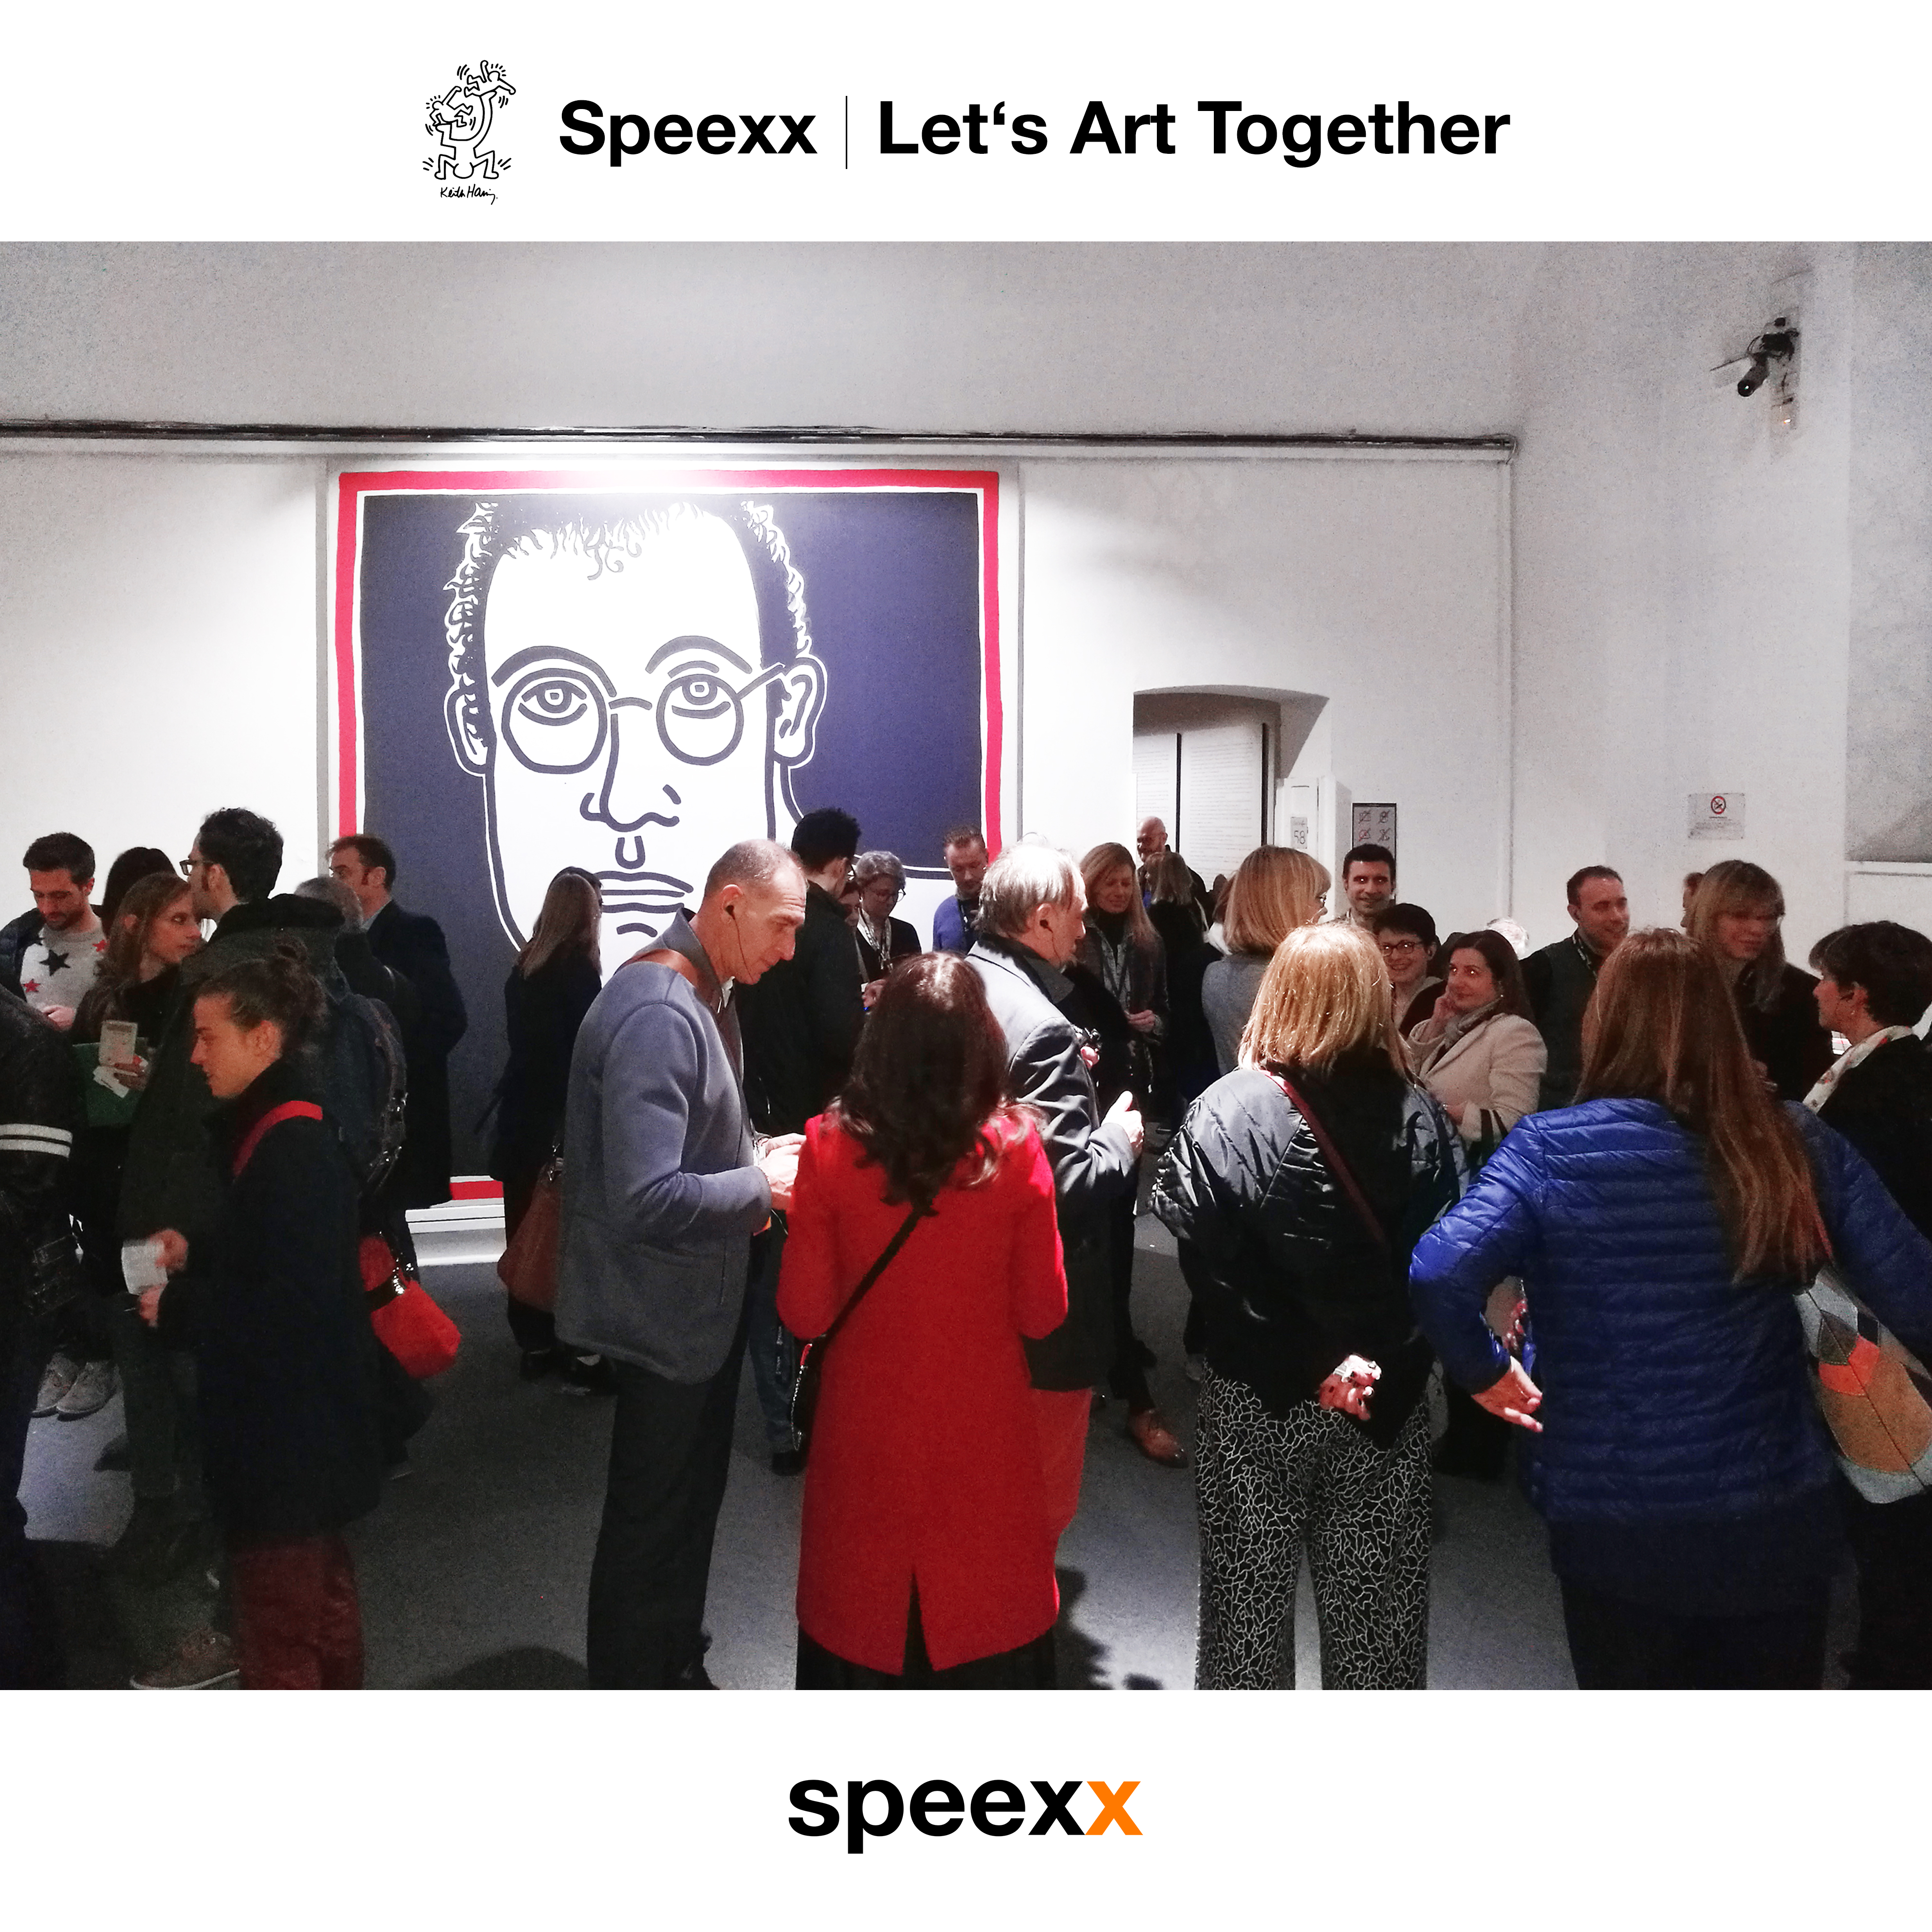 speexx let's art together -keith haring